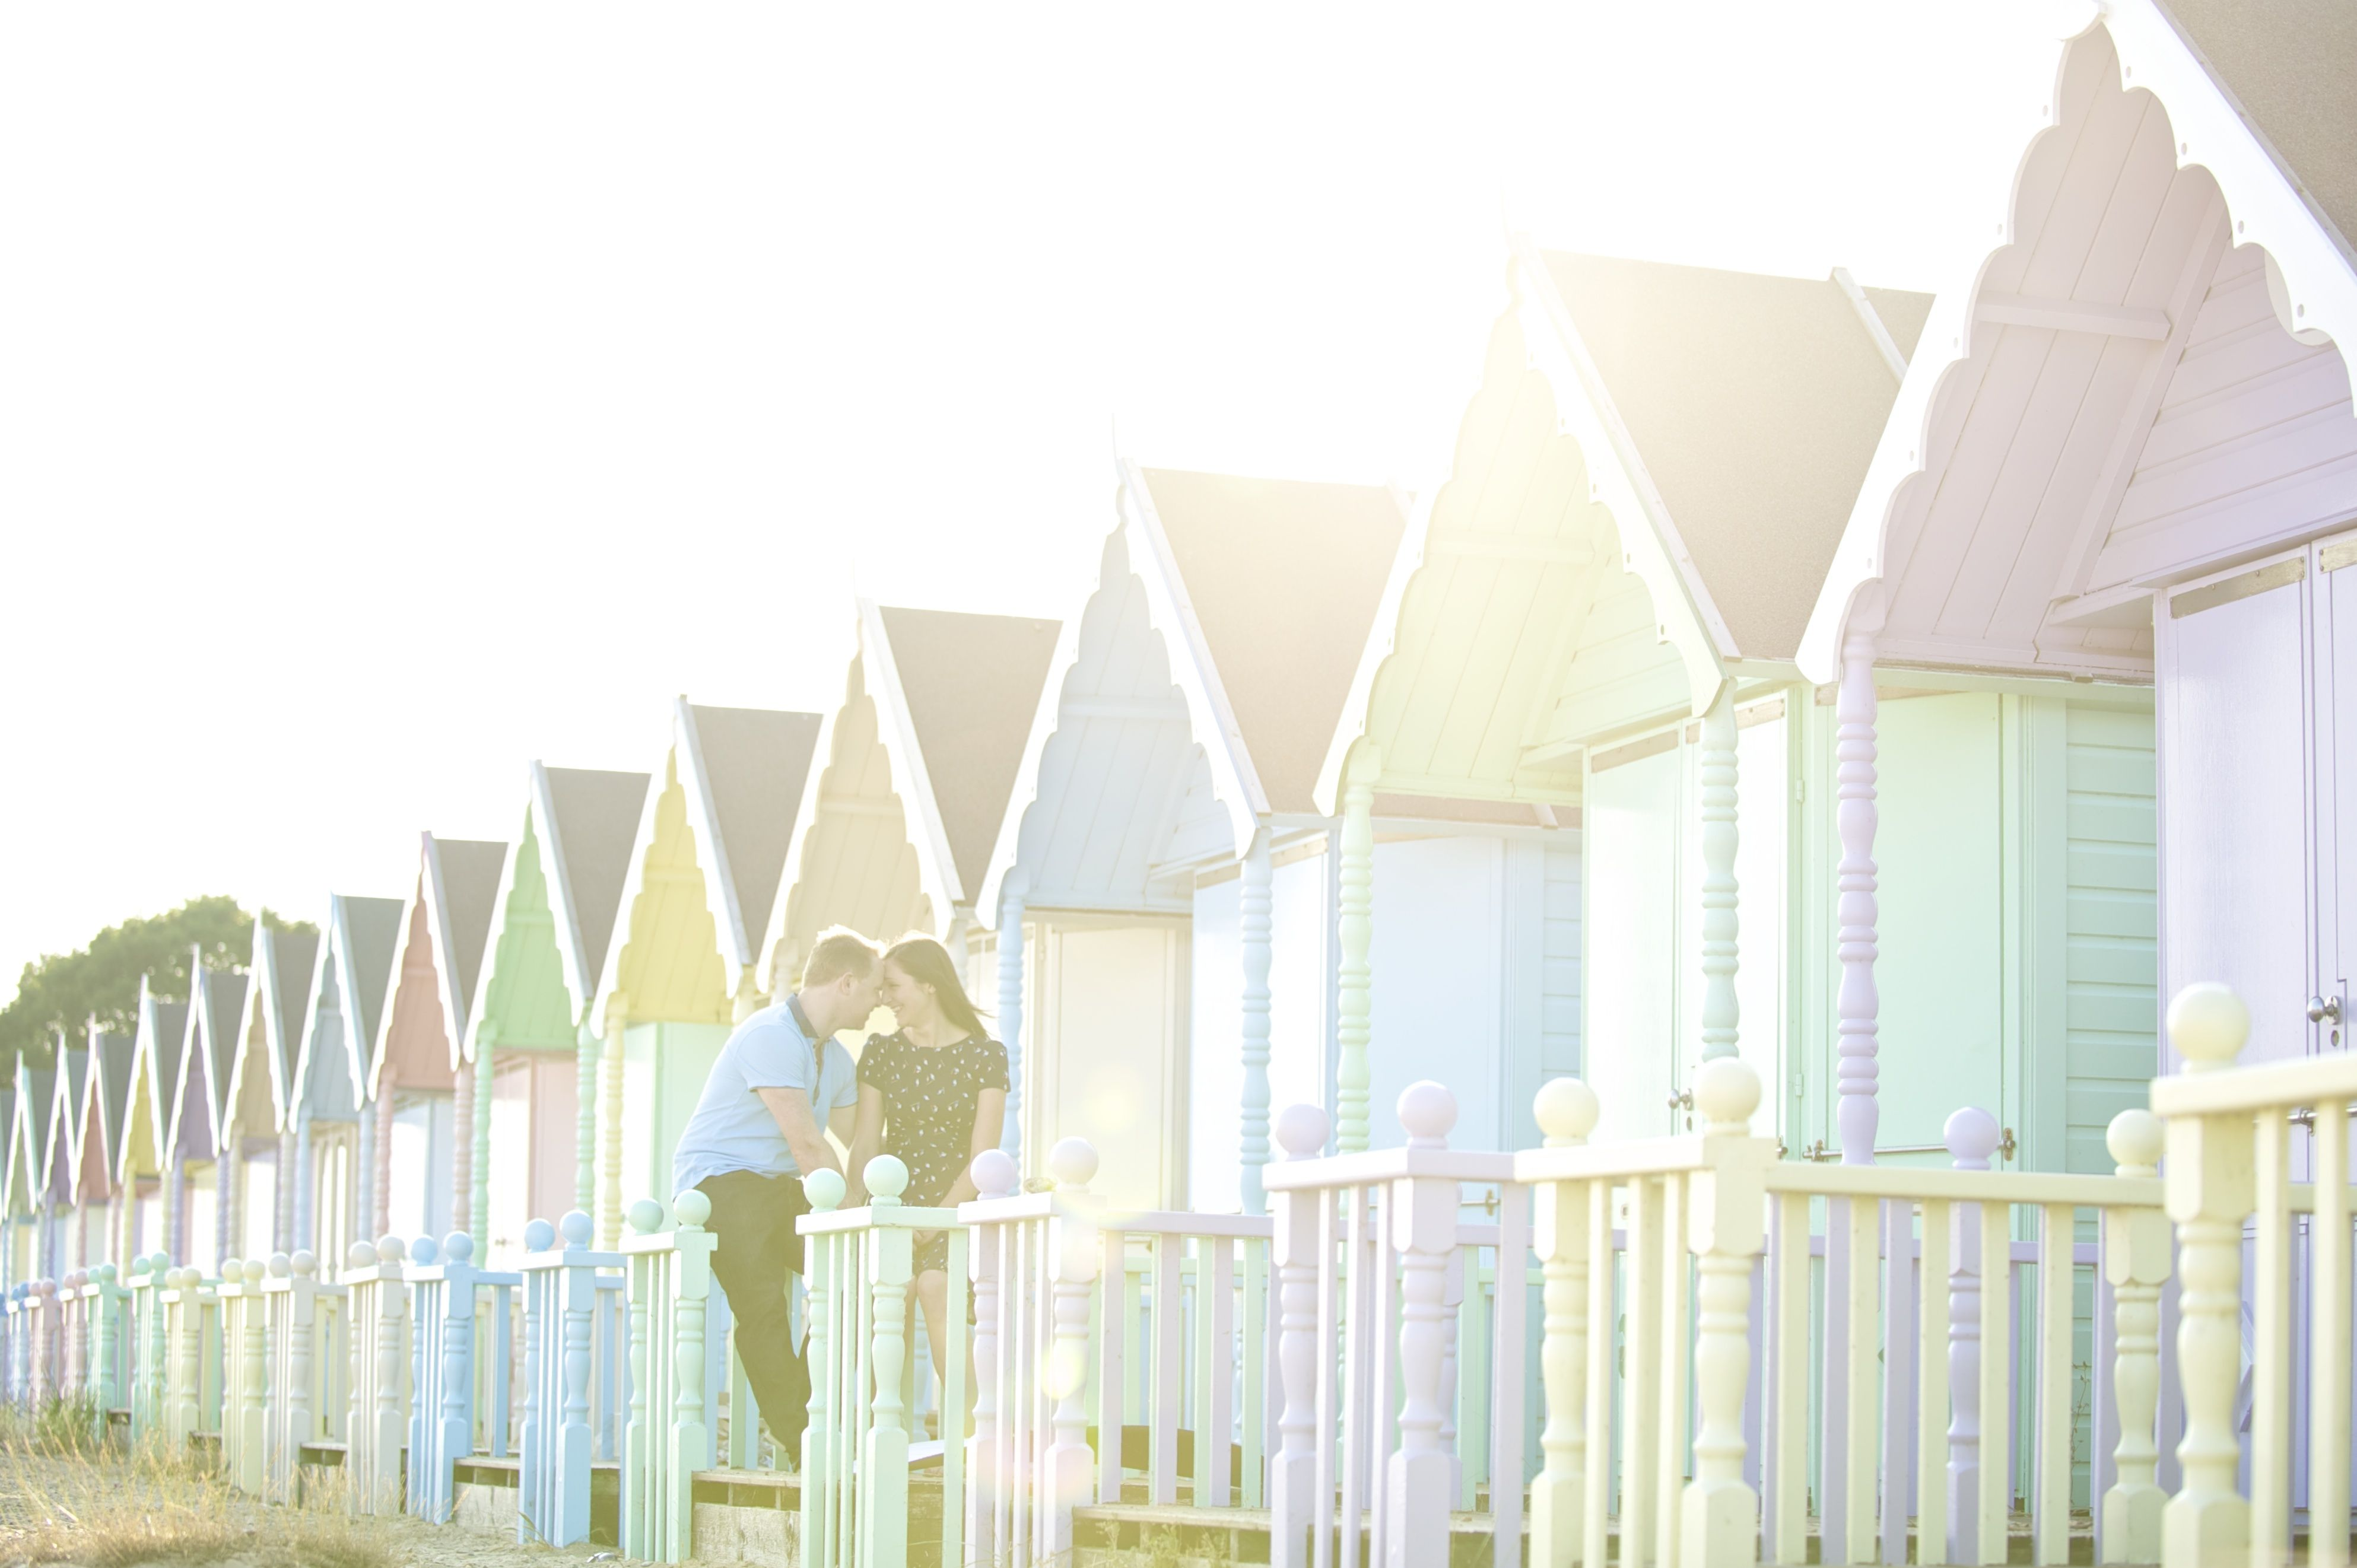 West Mersea pastel coloured beach huts, Pre-Wedding shoot. Great location for an engagement photography session.